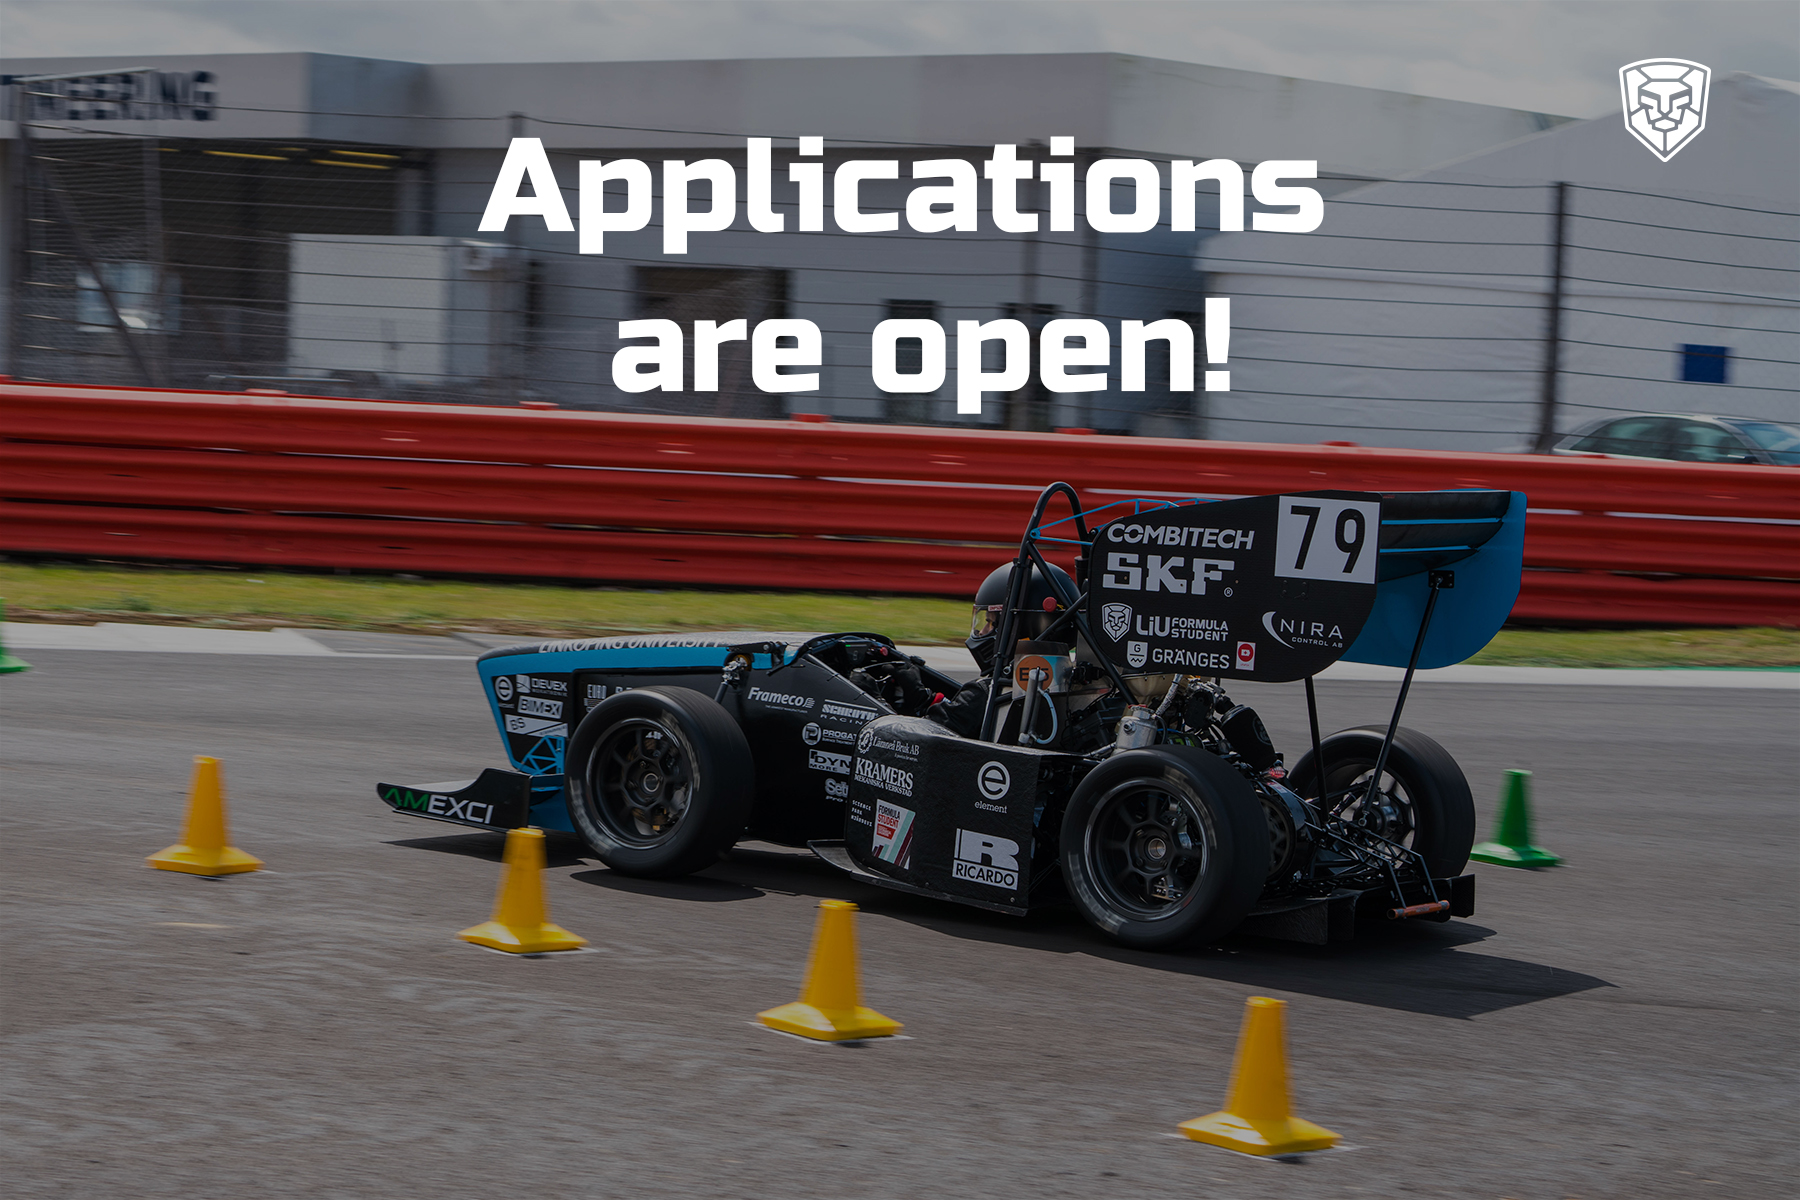 Applications for Season 20/21 are open!